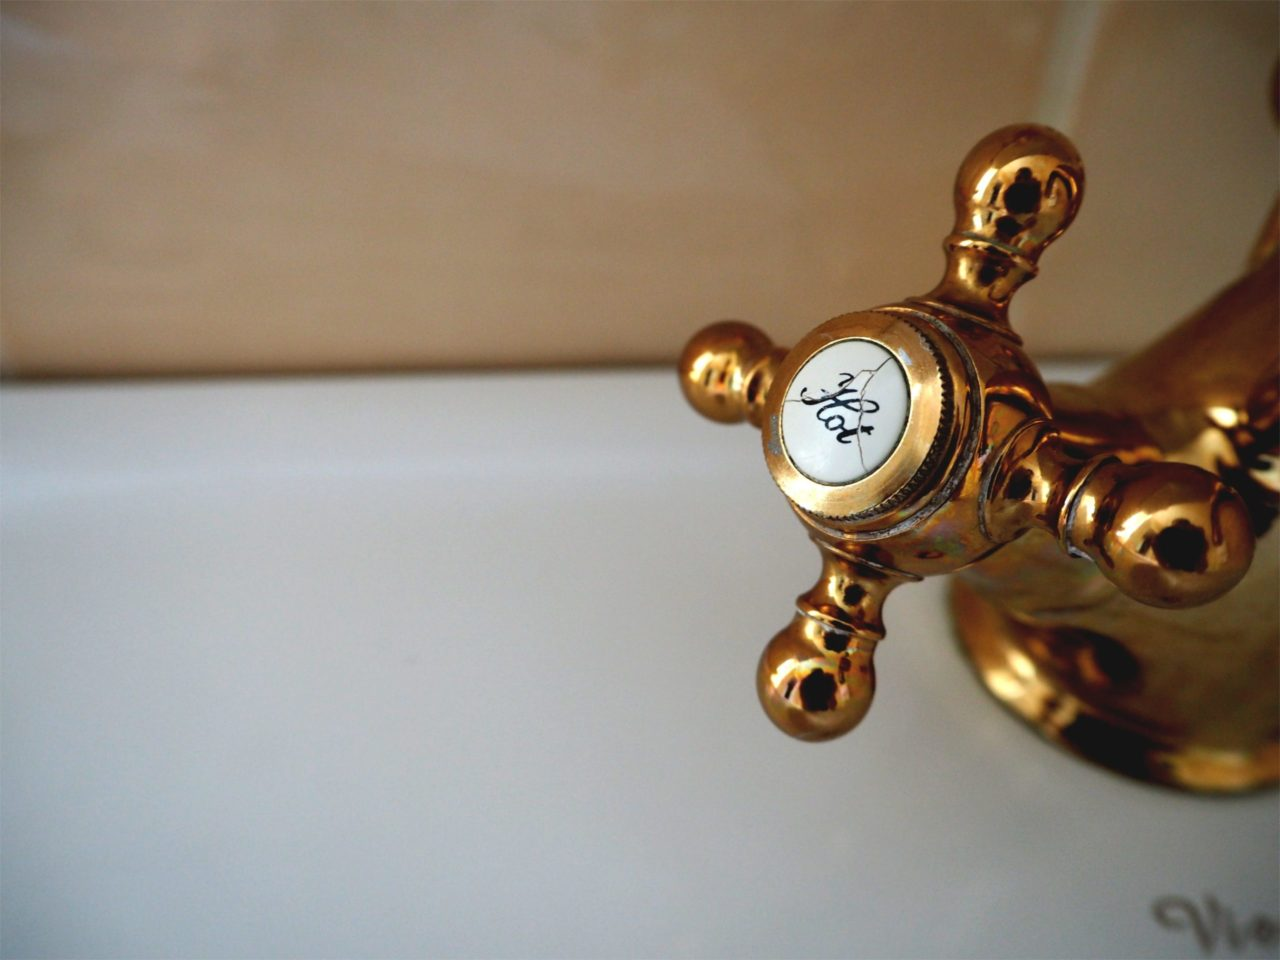 Delayed hot water faucet